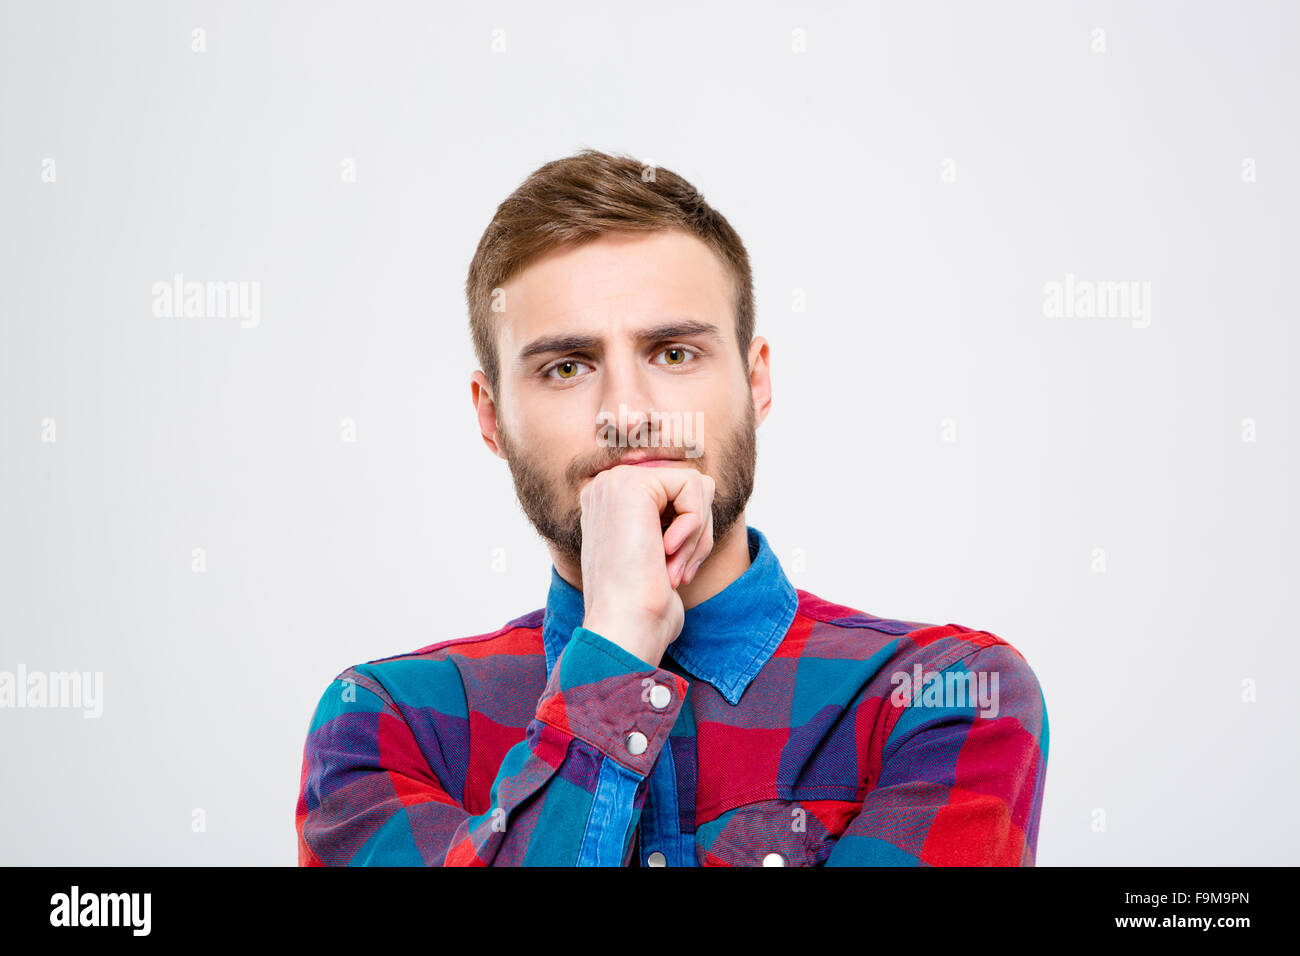 Portrait of a pensive casual man looking at camera isolated on a white background - Stock Image